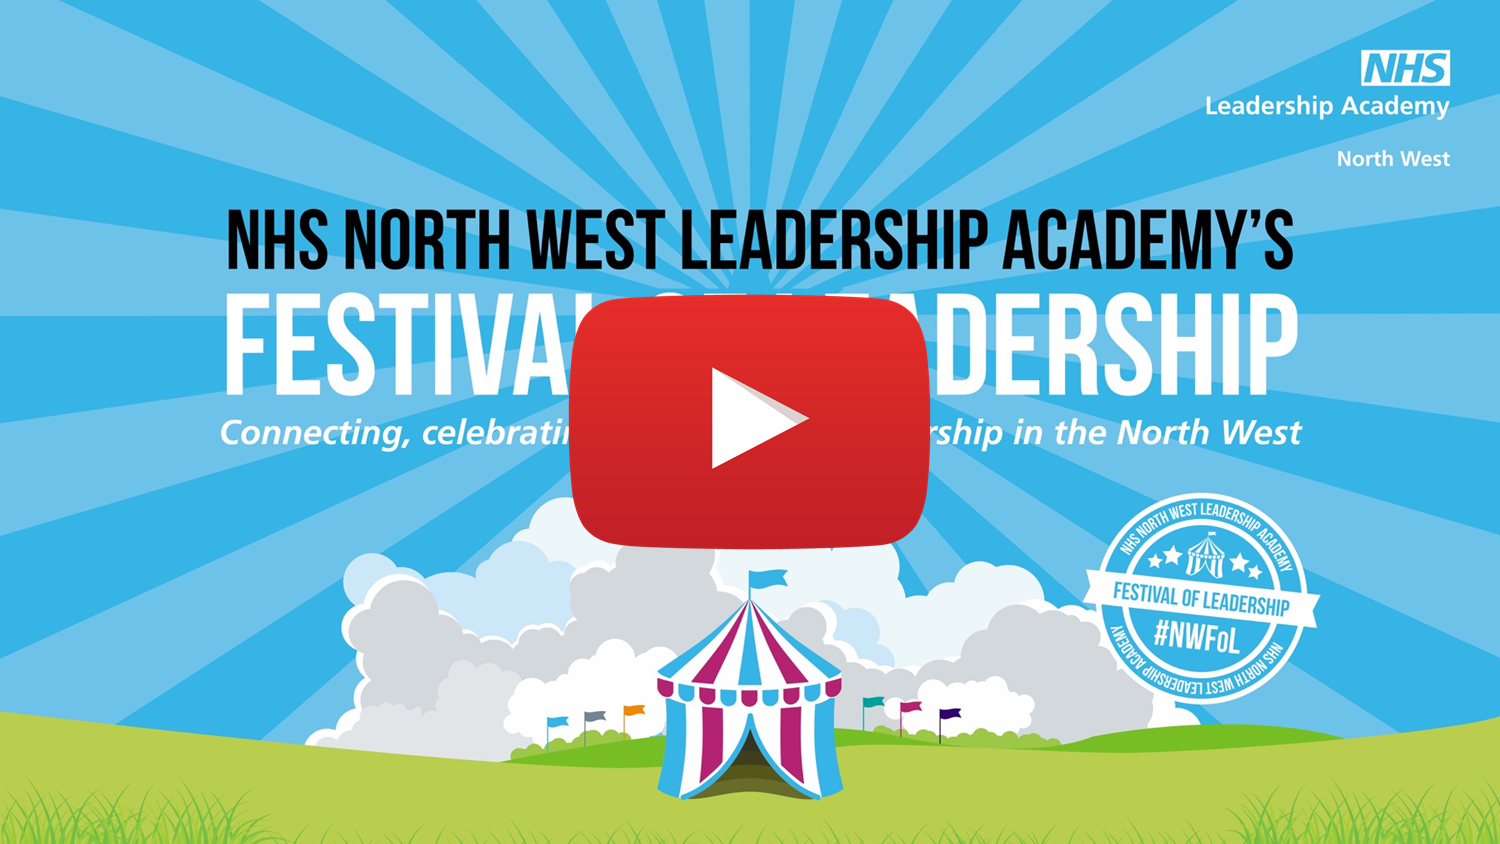 Festival of Leadership 2019 Film